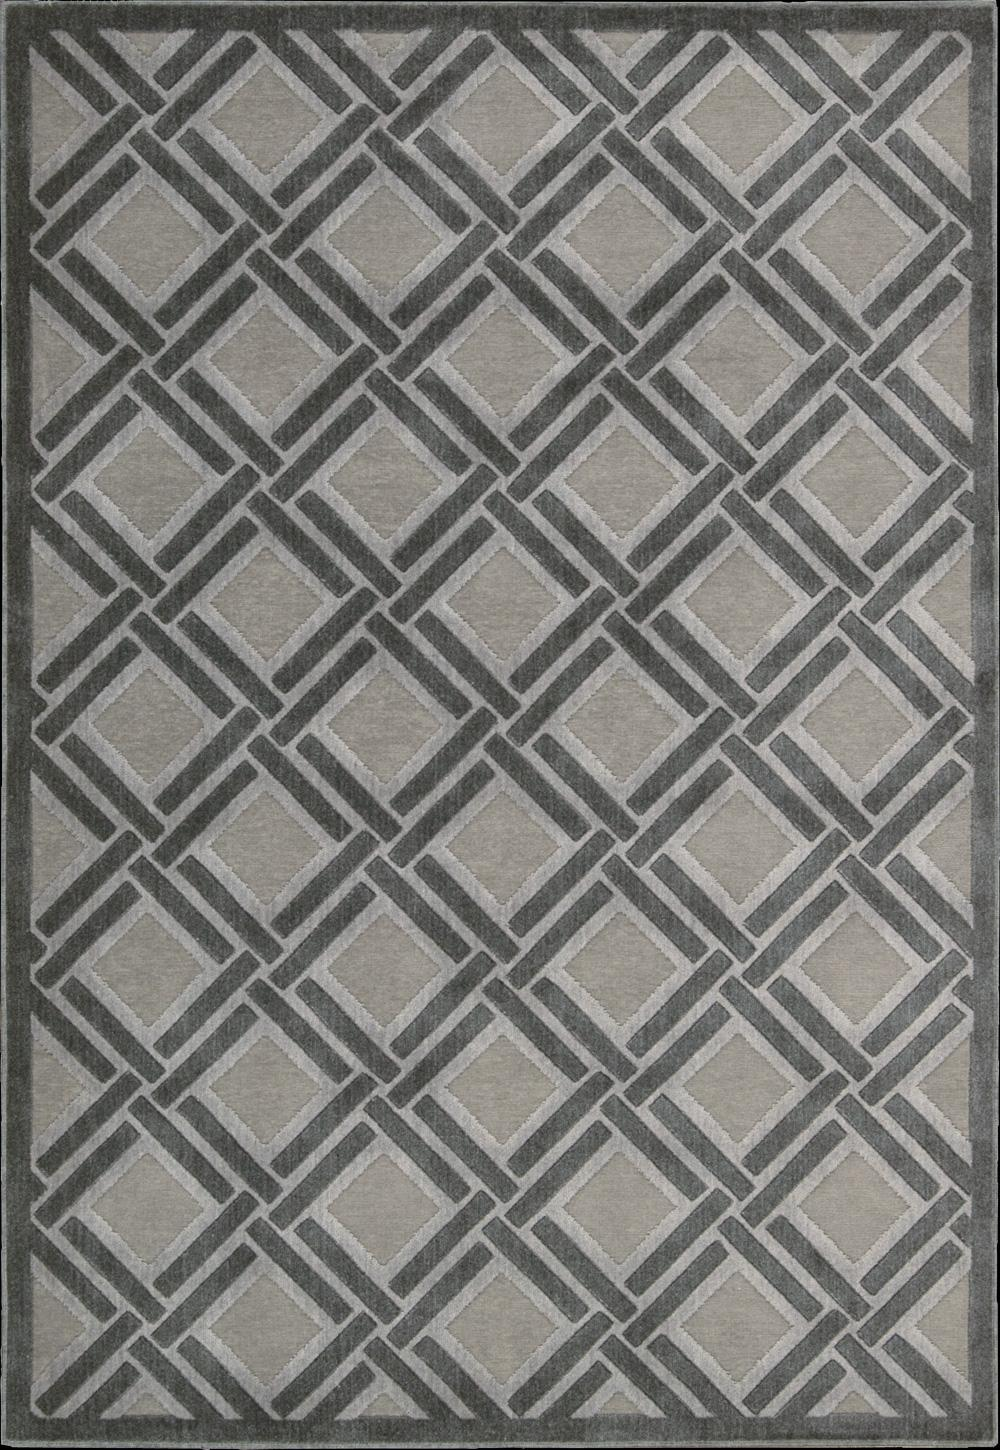 "Nourison Graphic Illusions Area Rug 5'3"" x 7'5"" - Item Number: 16061"